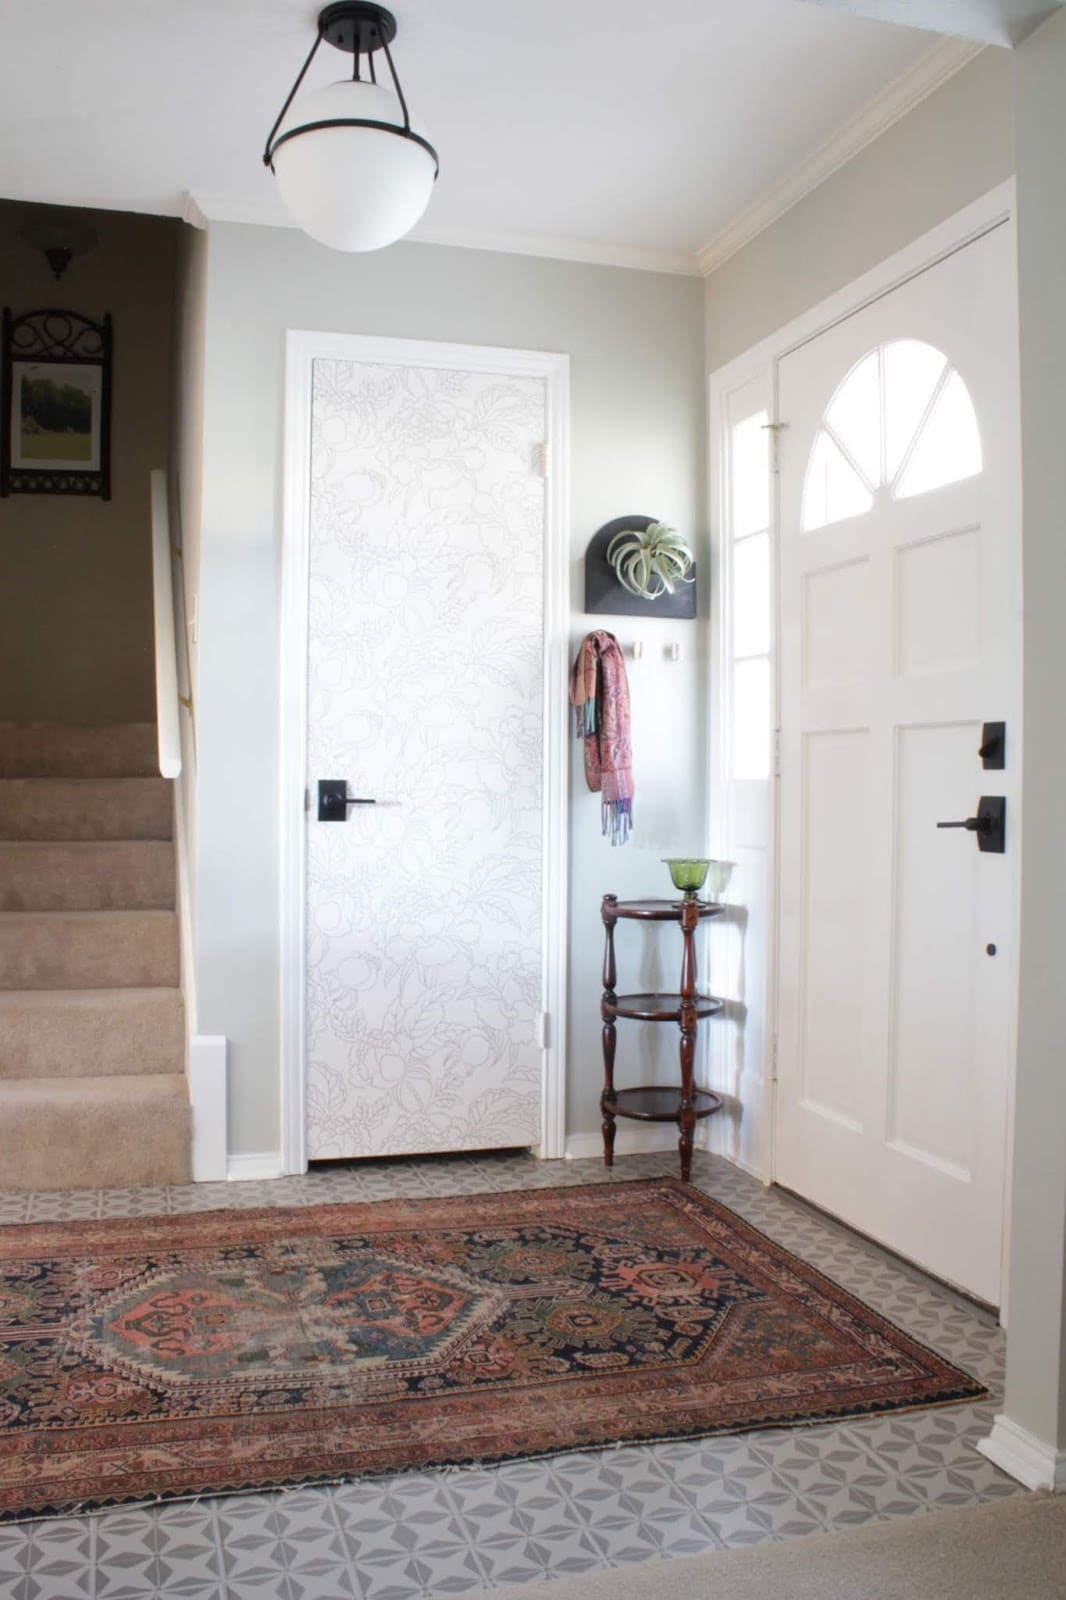 White front door and floral white closet door with a rug on the floor and tile floor